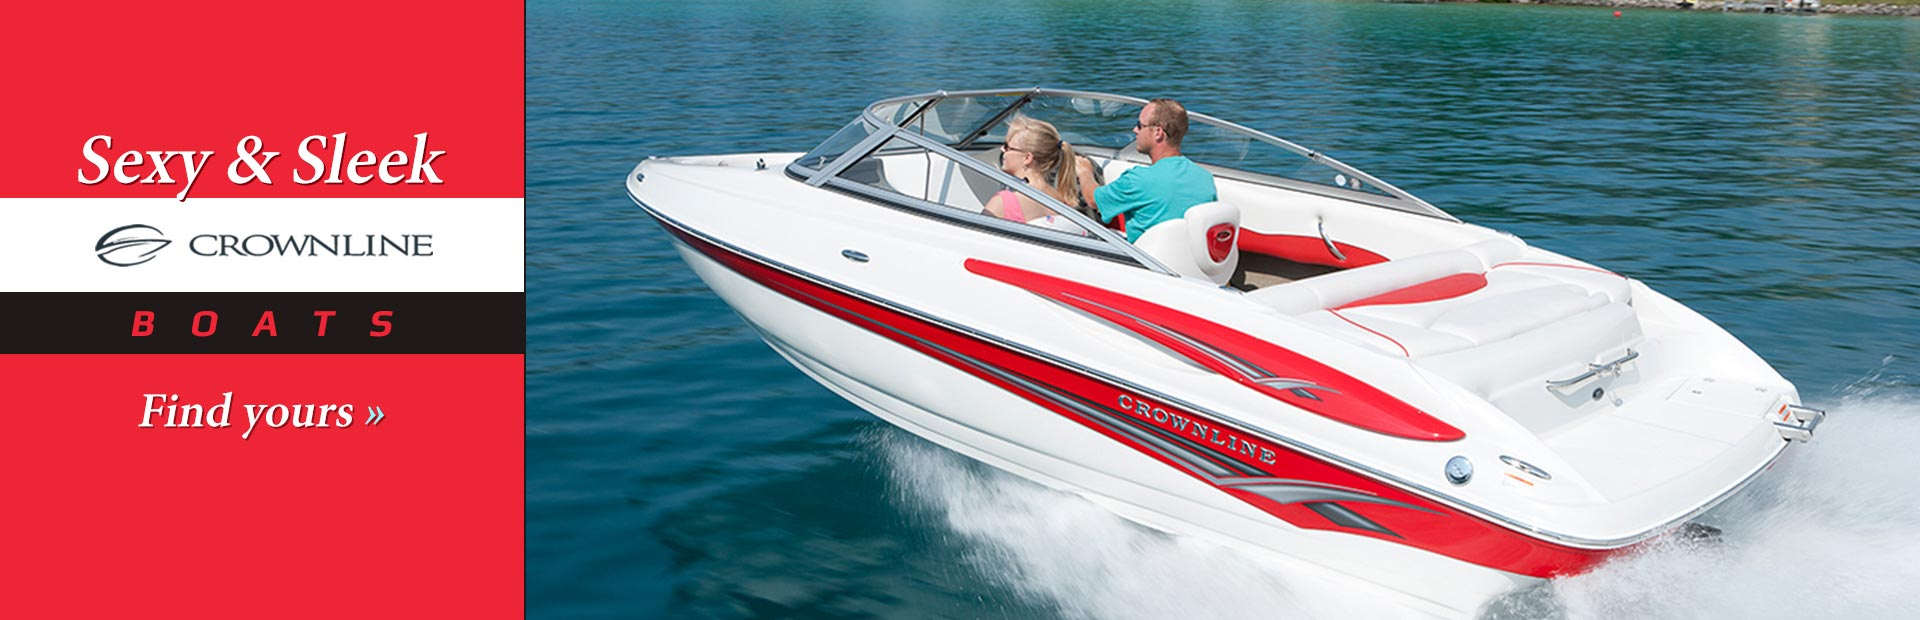 Crownline Boats: Click here to view the models.